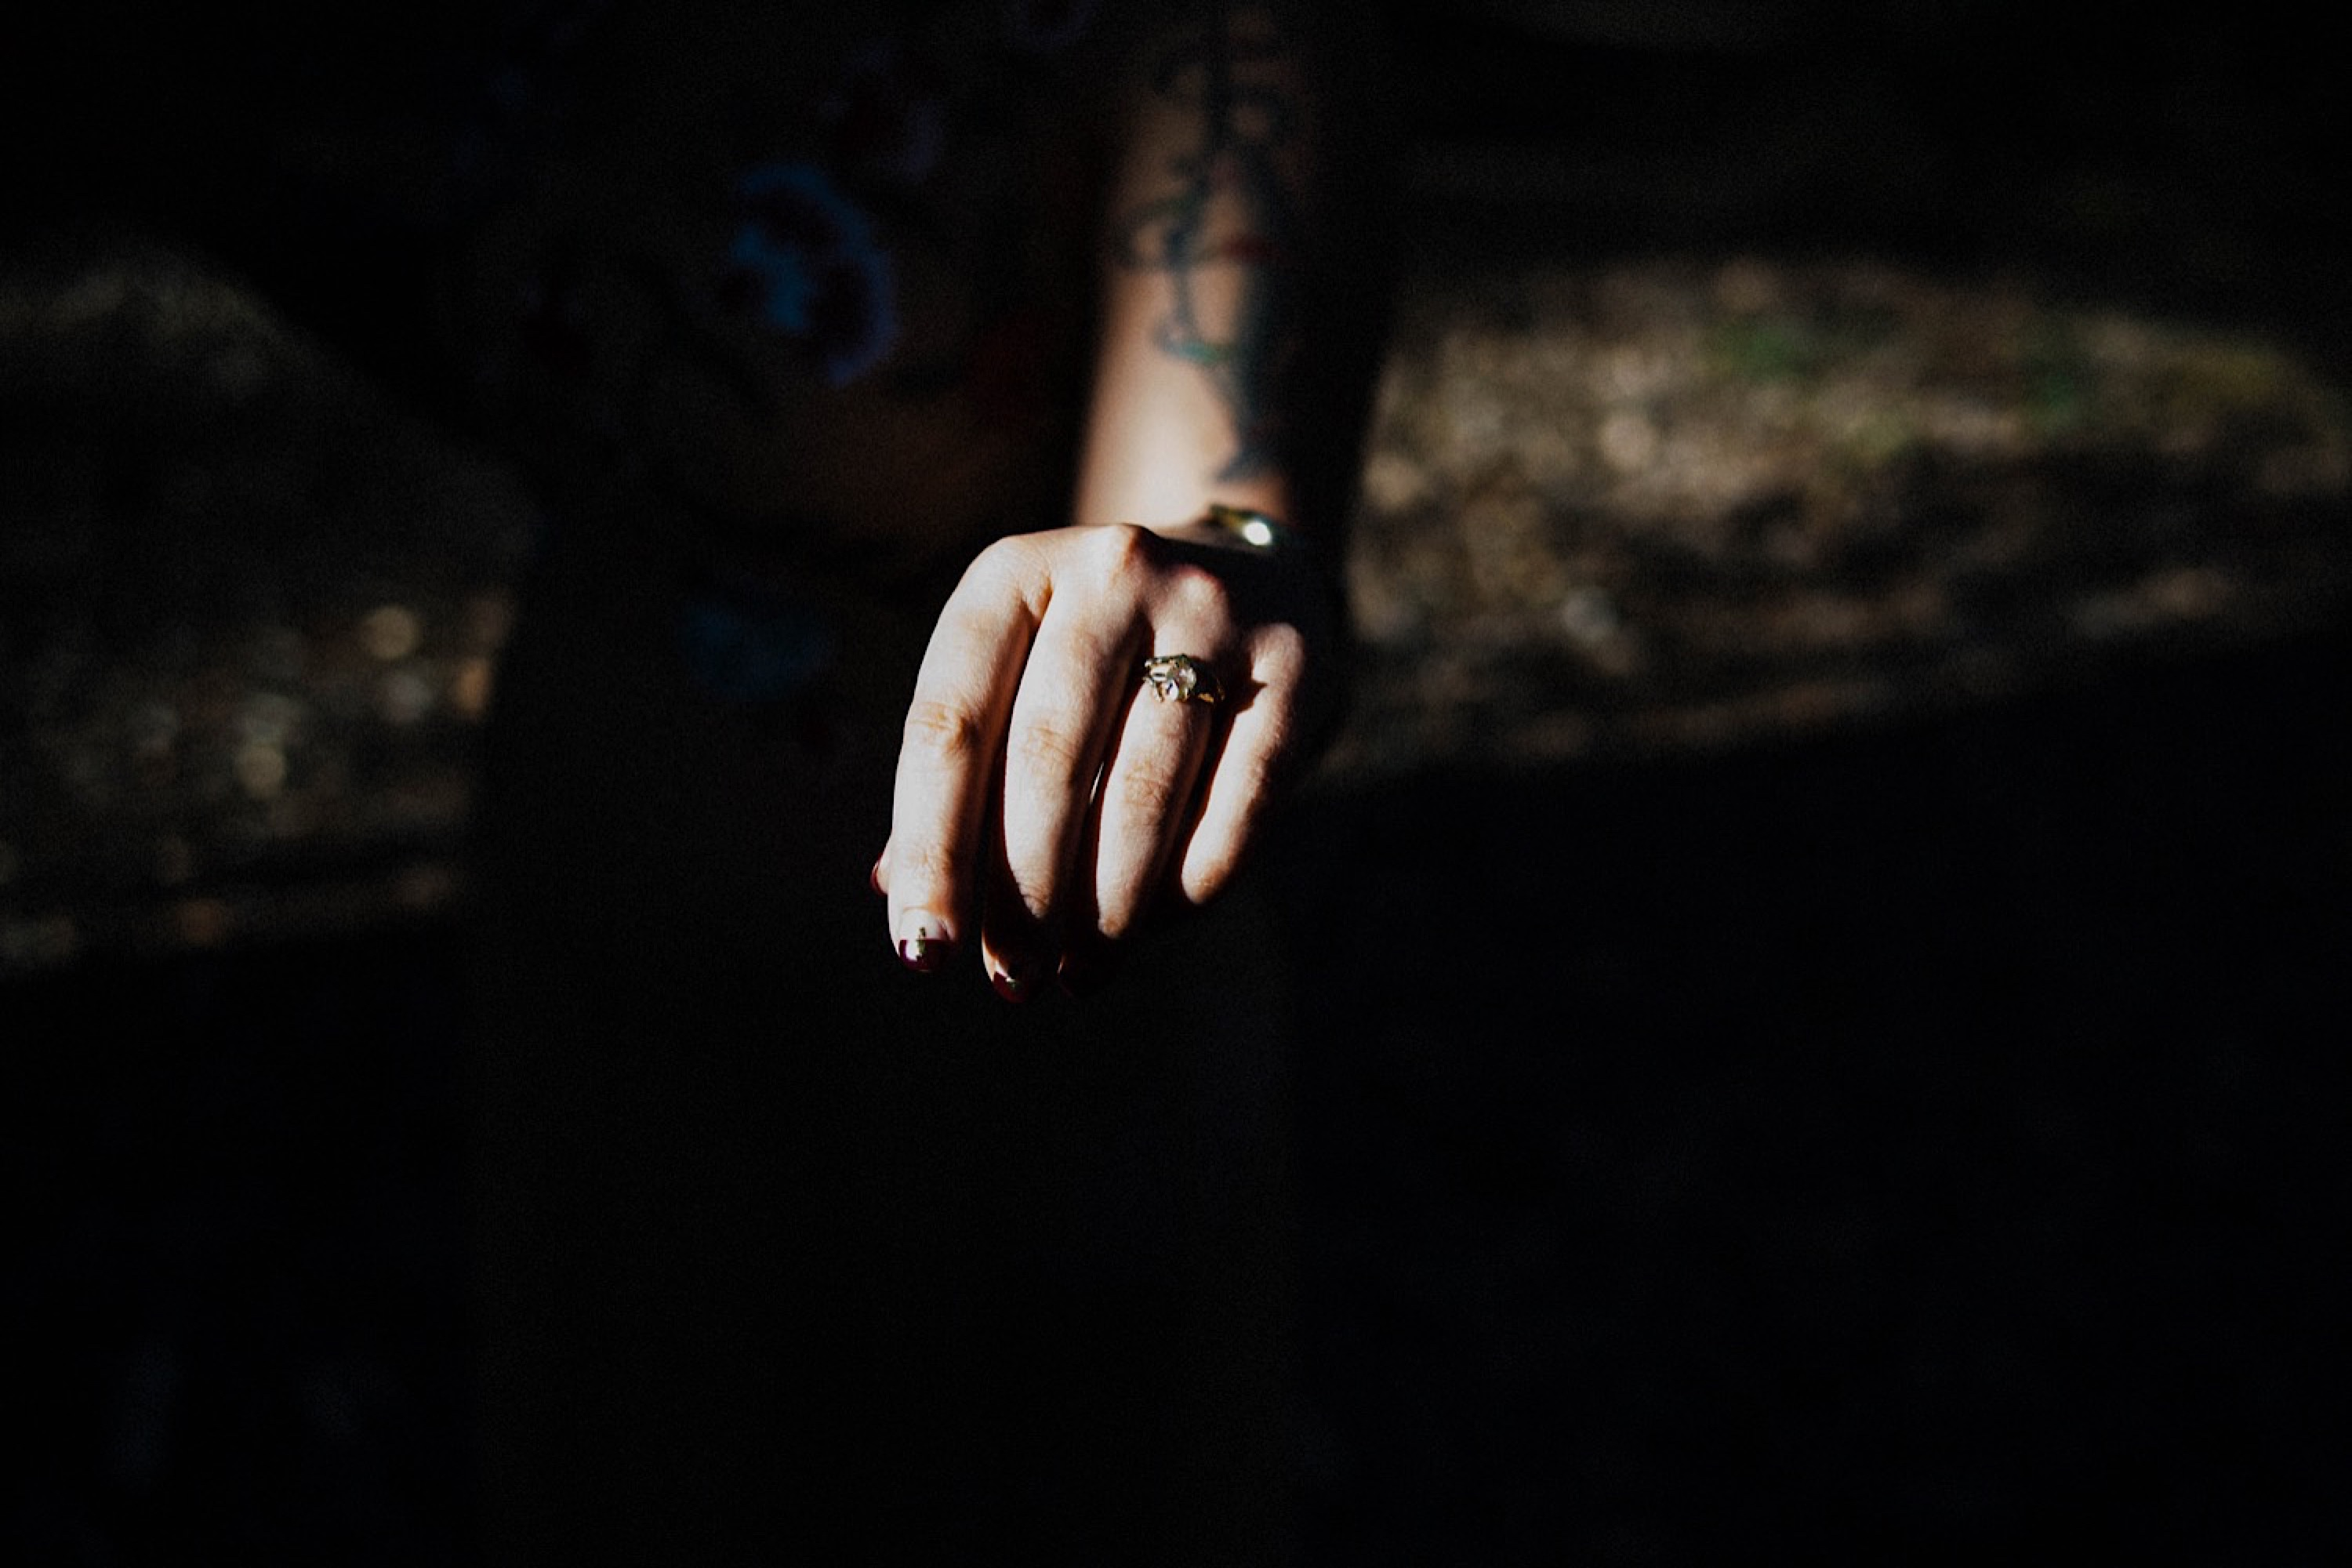 A dark & moody wedding photo of the bride's ethical engagement and wedding rings.